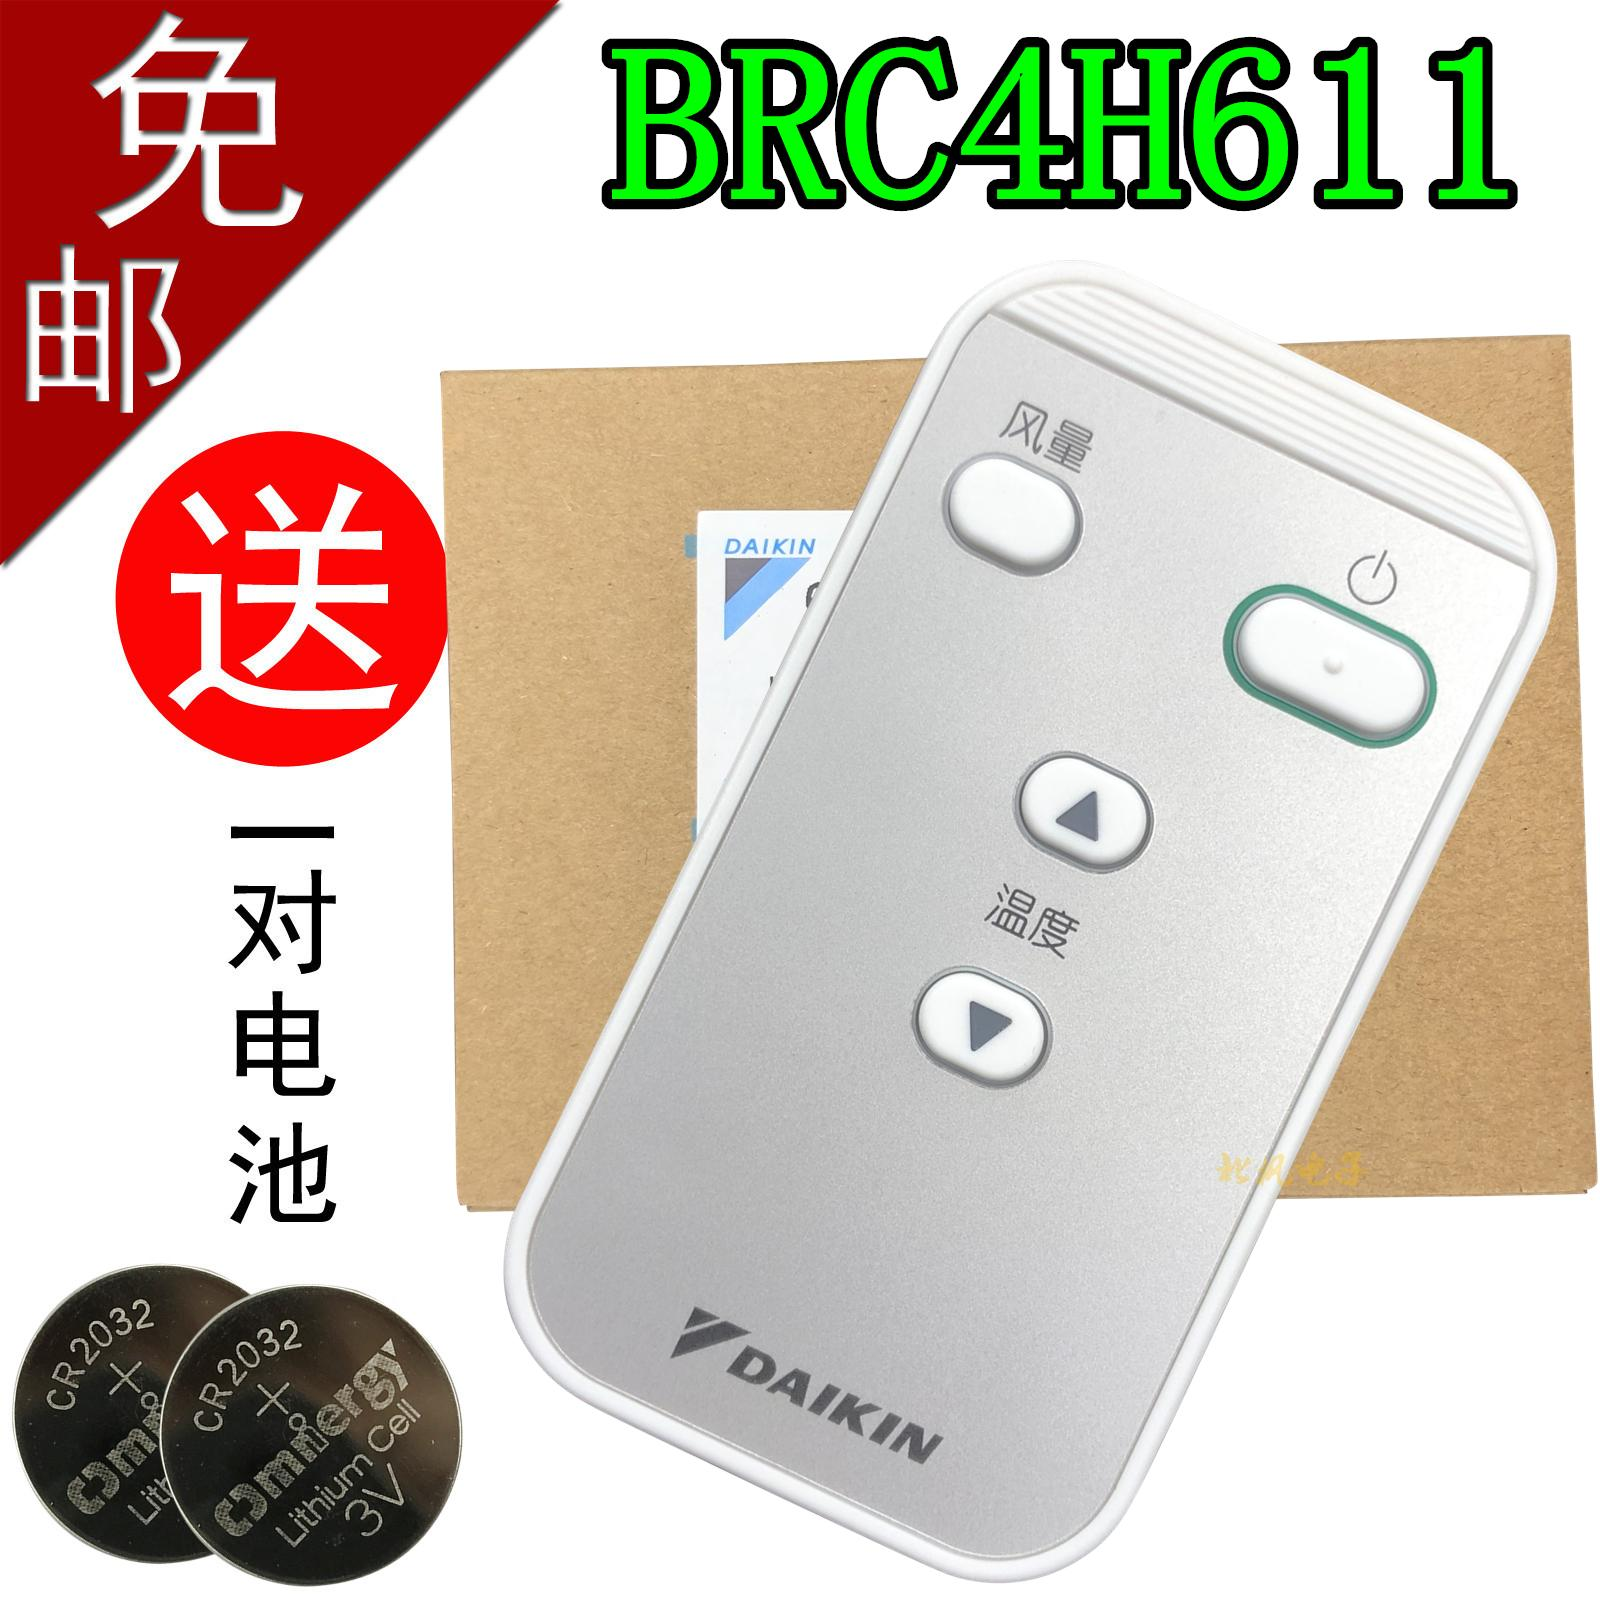 Brand New & Original Daikin Air Conditioner 3D Air Remote Control BRC4H611  with Wire Controller BRC1H611